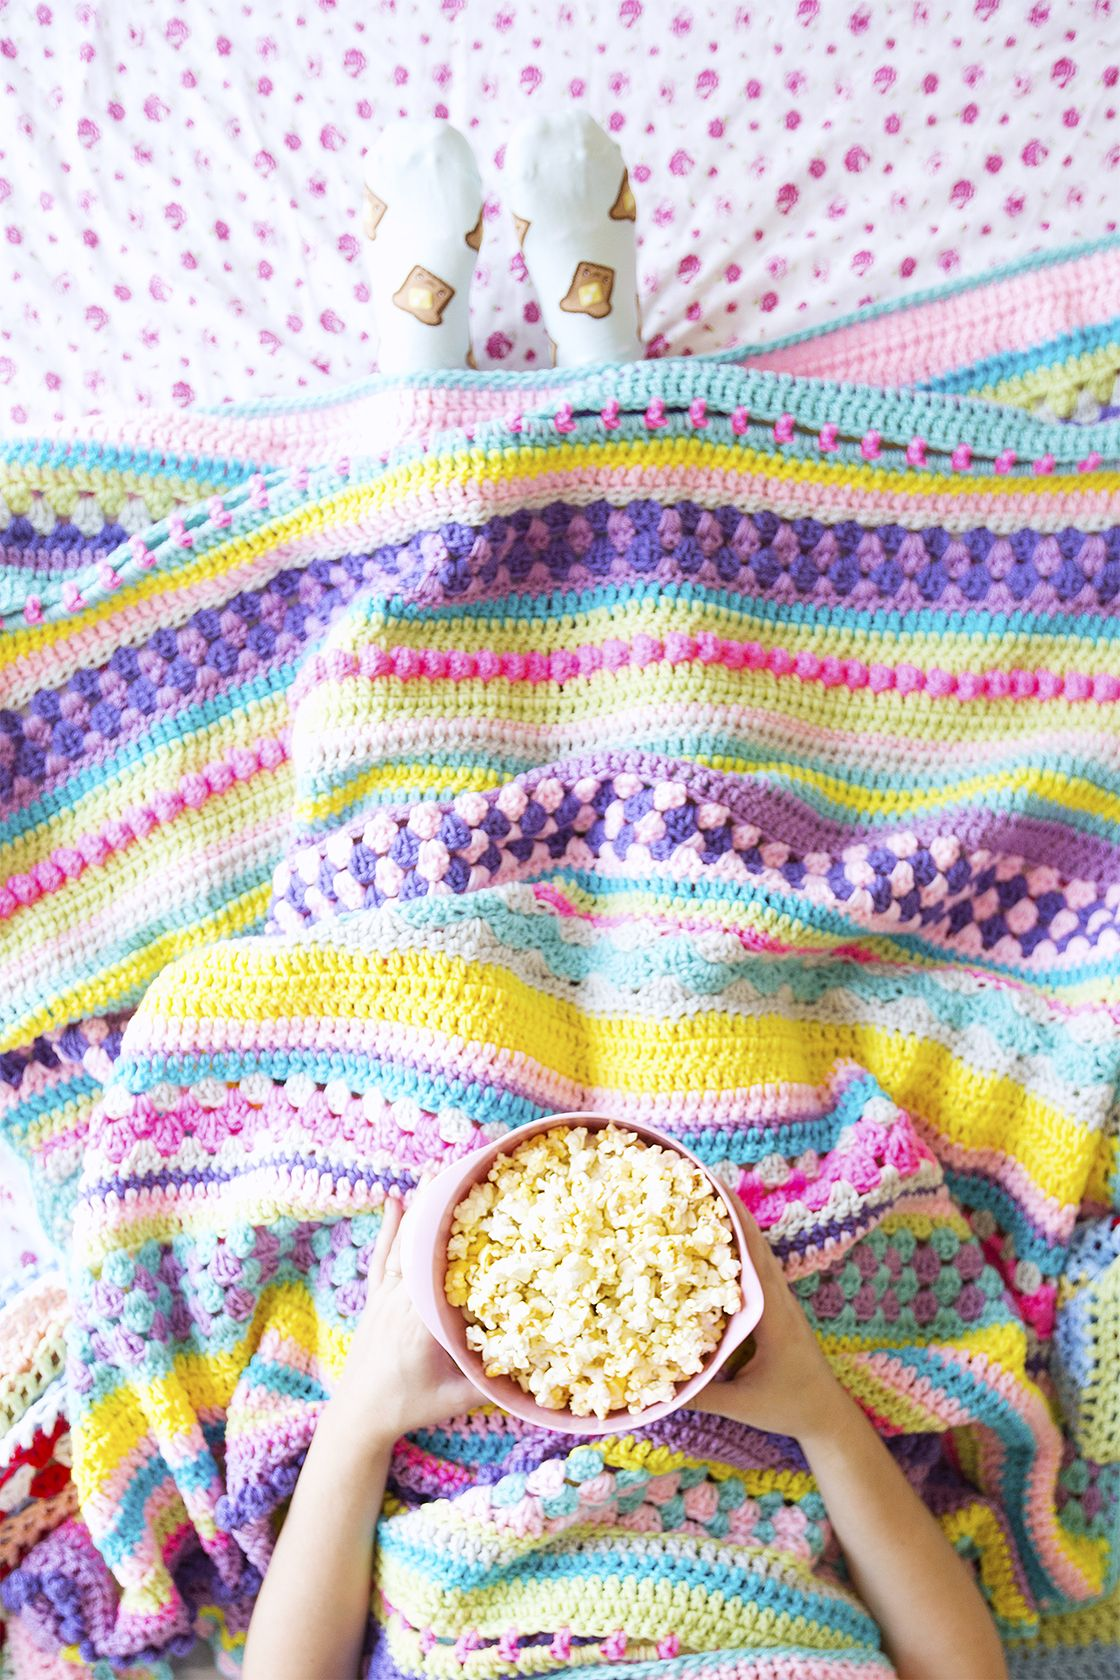 Colorful Throw Blankets Impressive Popcorn And A Movie With A Colorful Throw Blanket  #1 Crochet Design Ideas